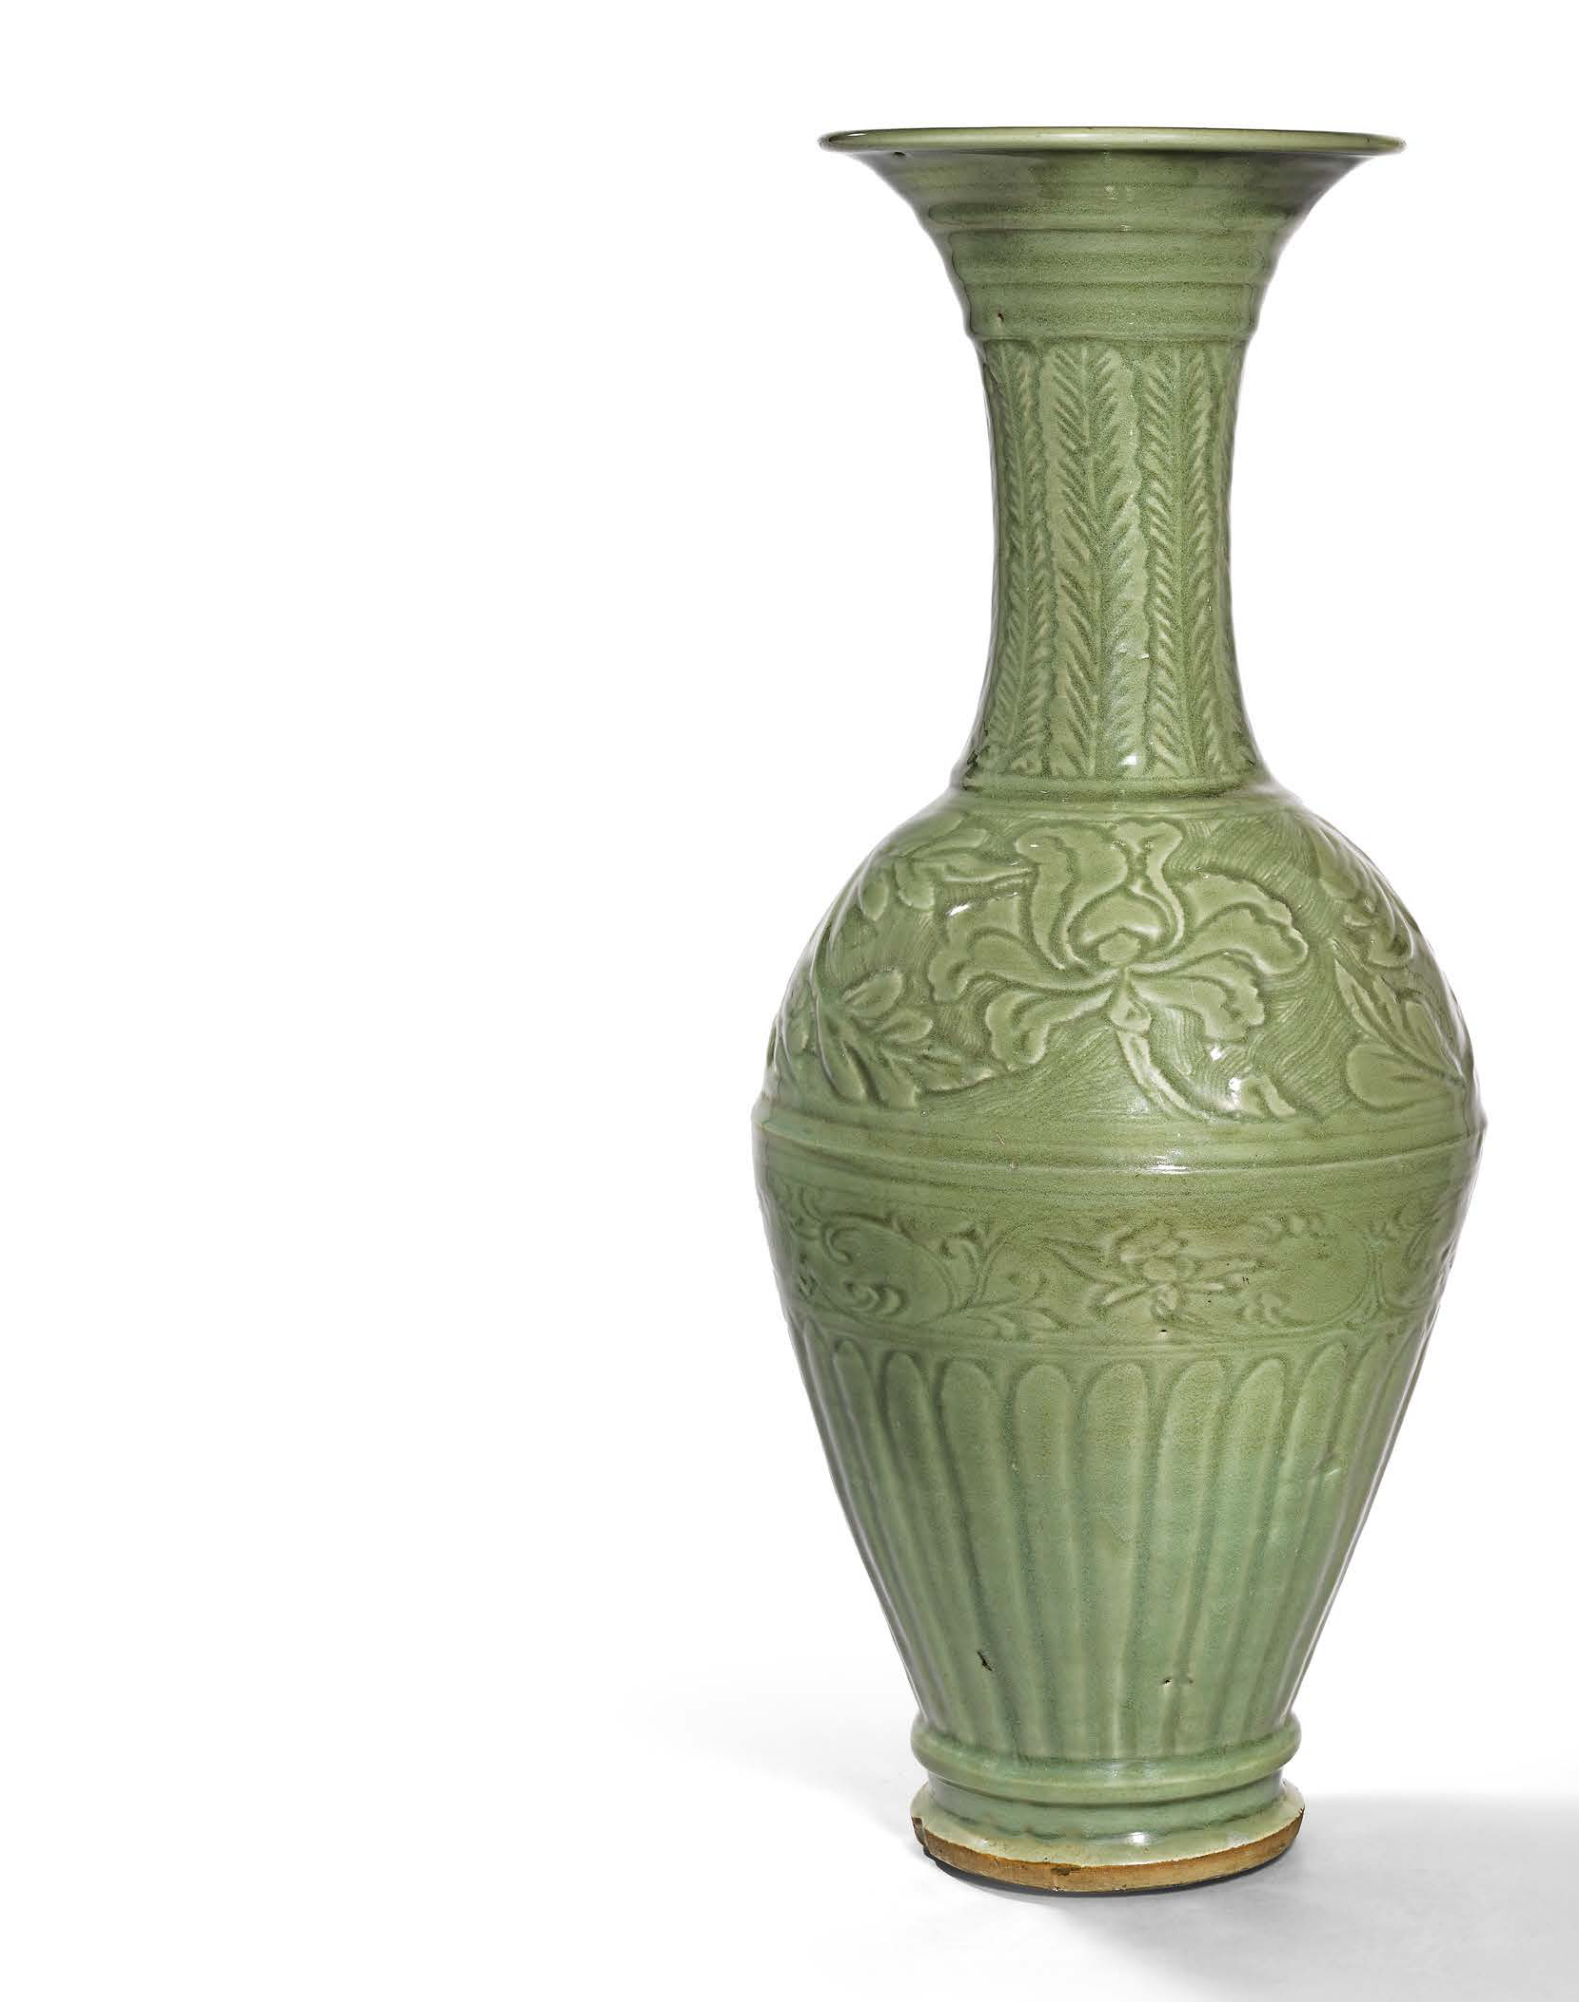 A large carved Longquan celadon trumpet-necked vase, Yuan dynasty (1279-1368)